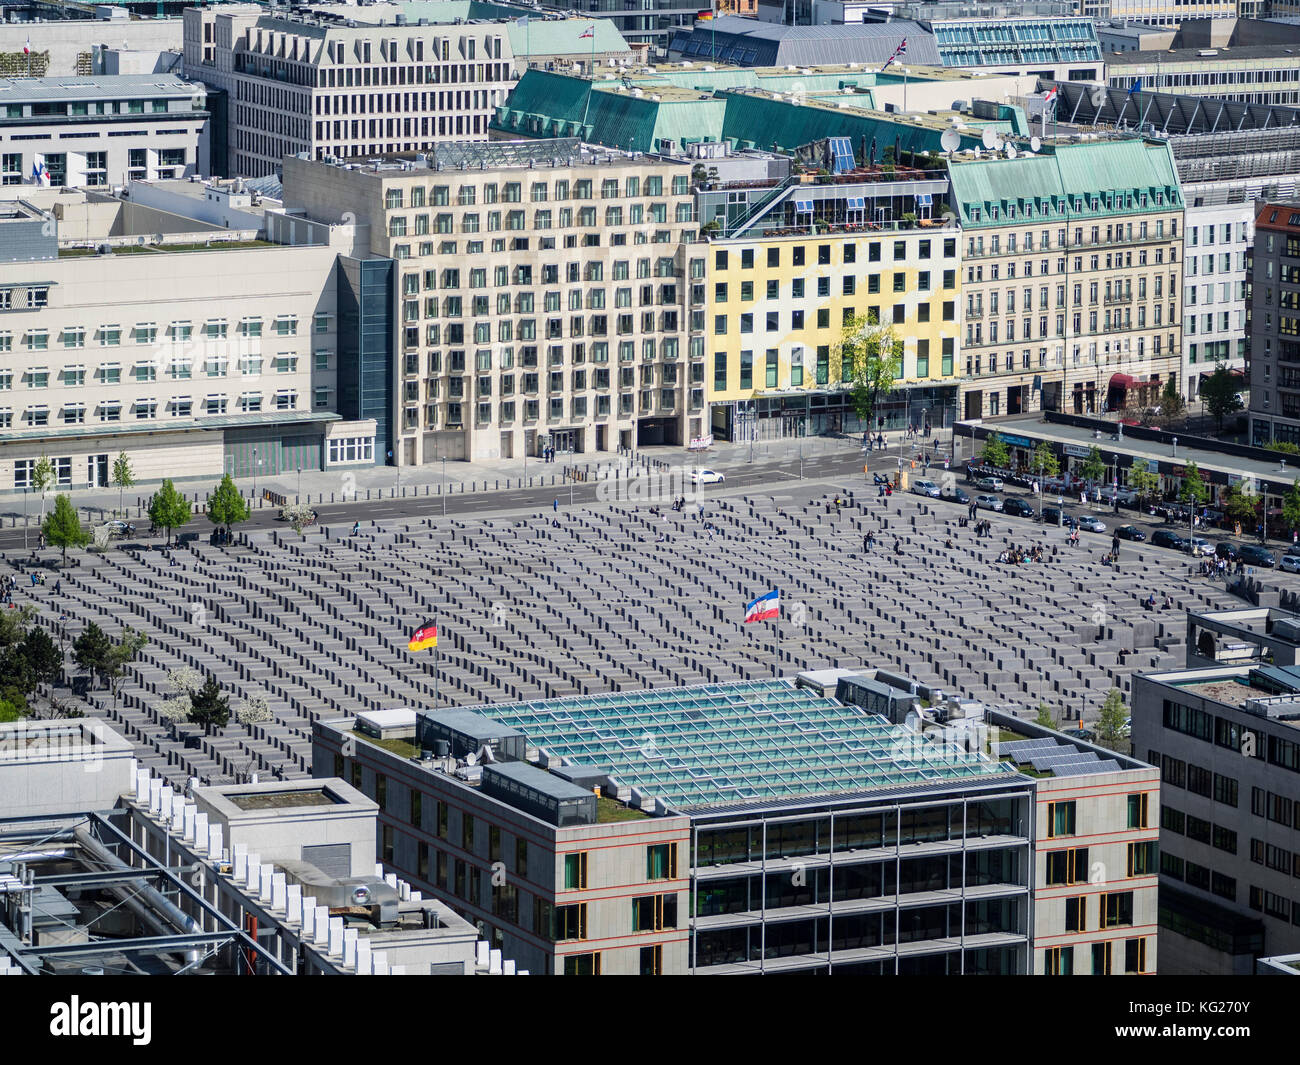 Cityscape view towards the Holocaust Memorial as seen from the viewing platform of the Kollhoff Tower, Berlin, Germany, - Stock Image